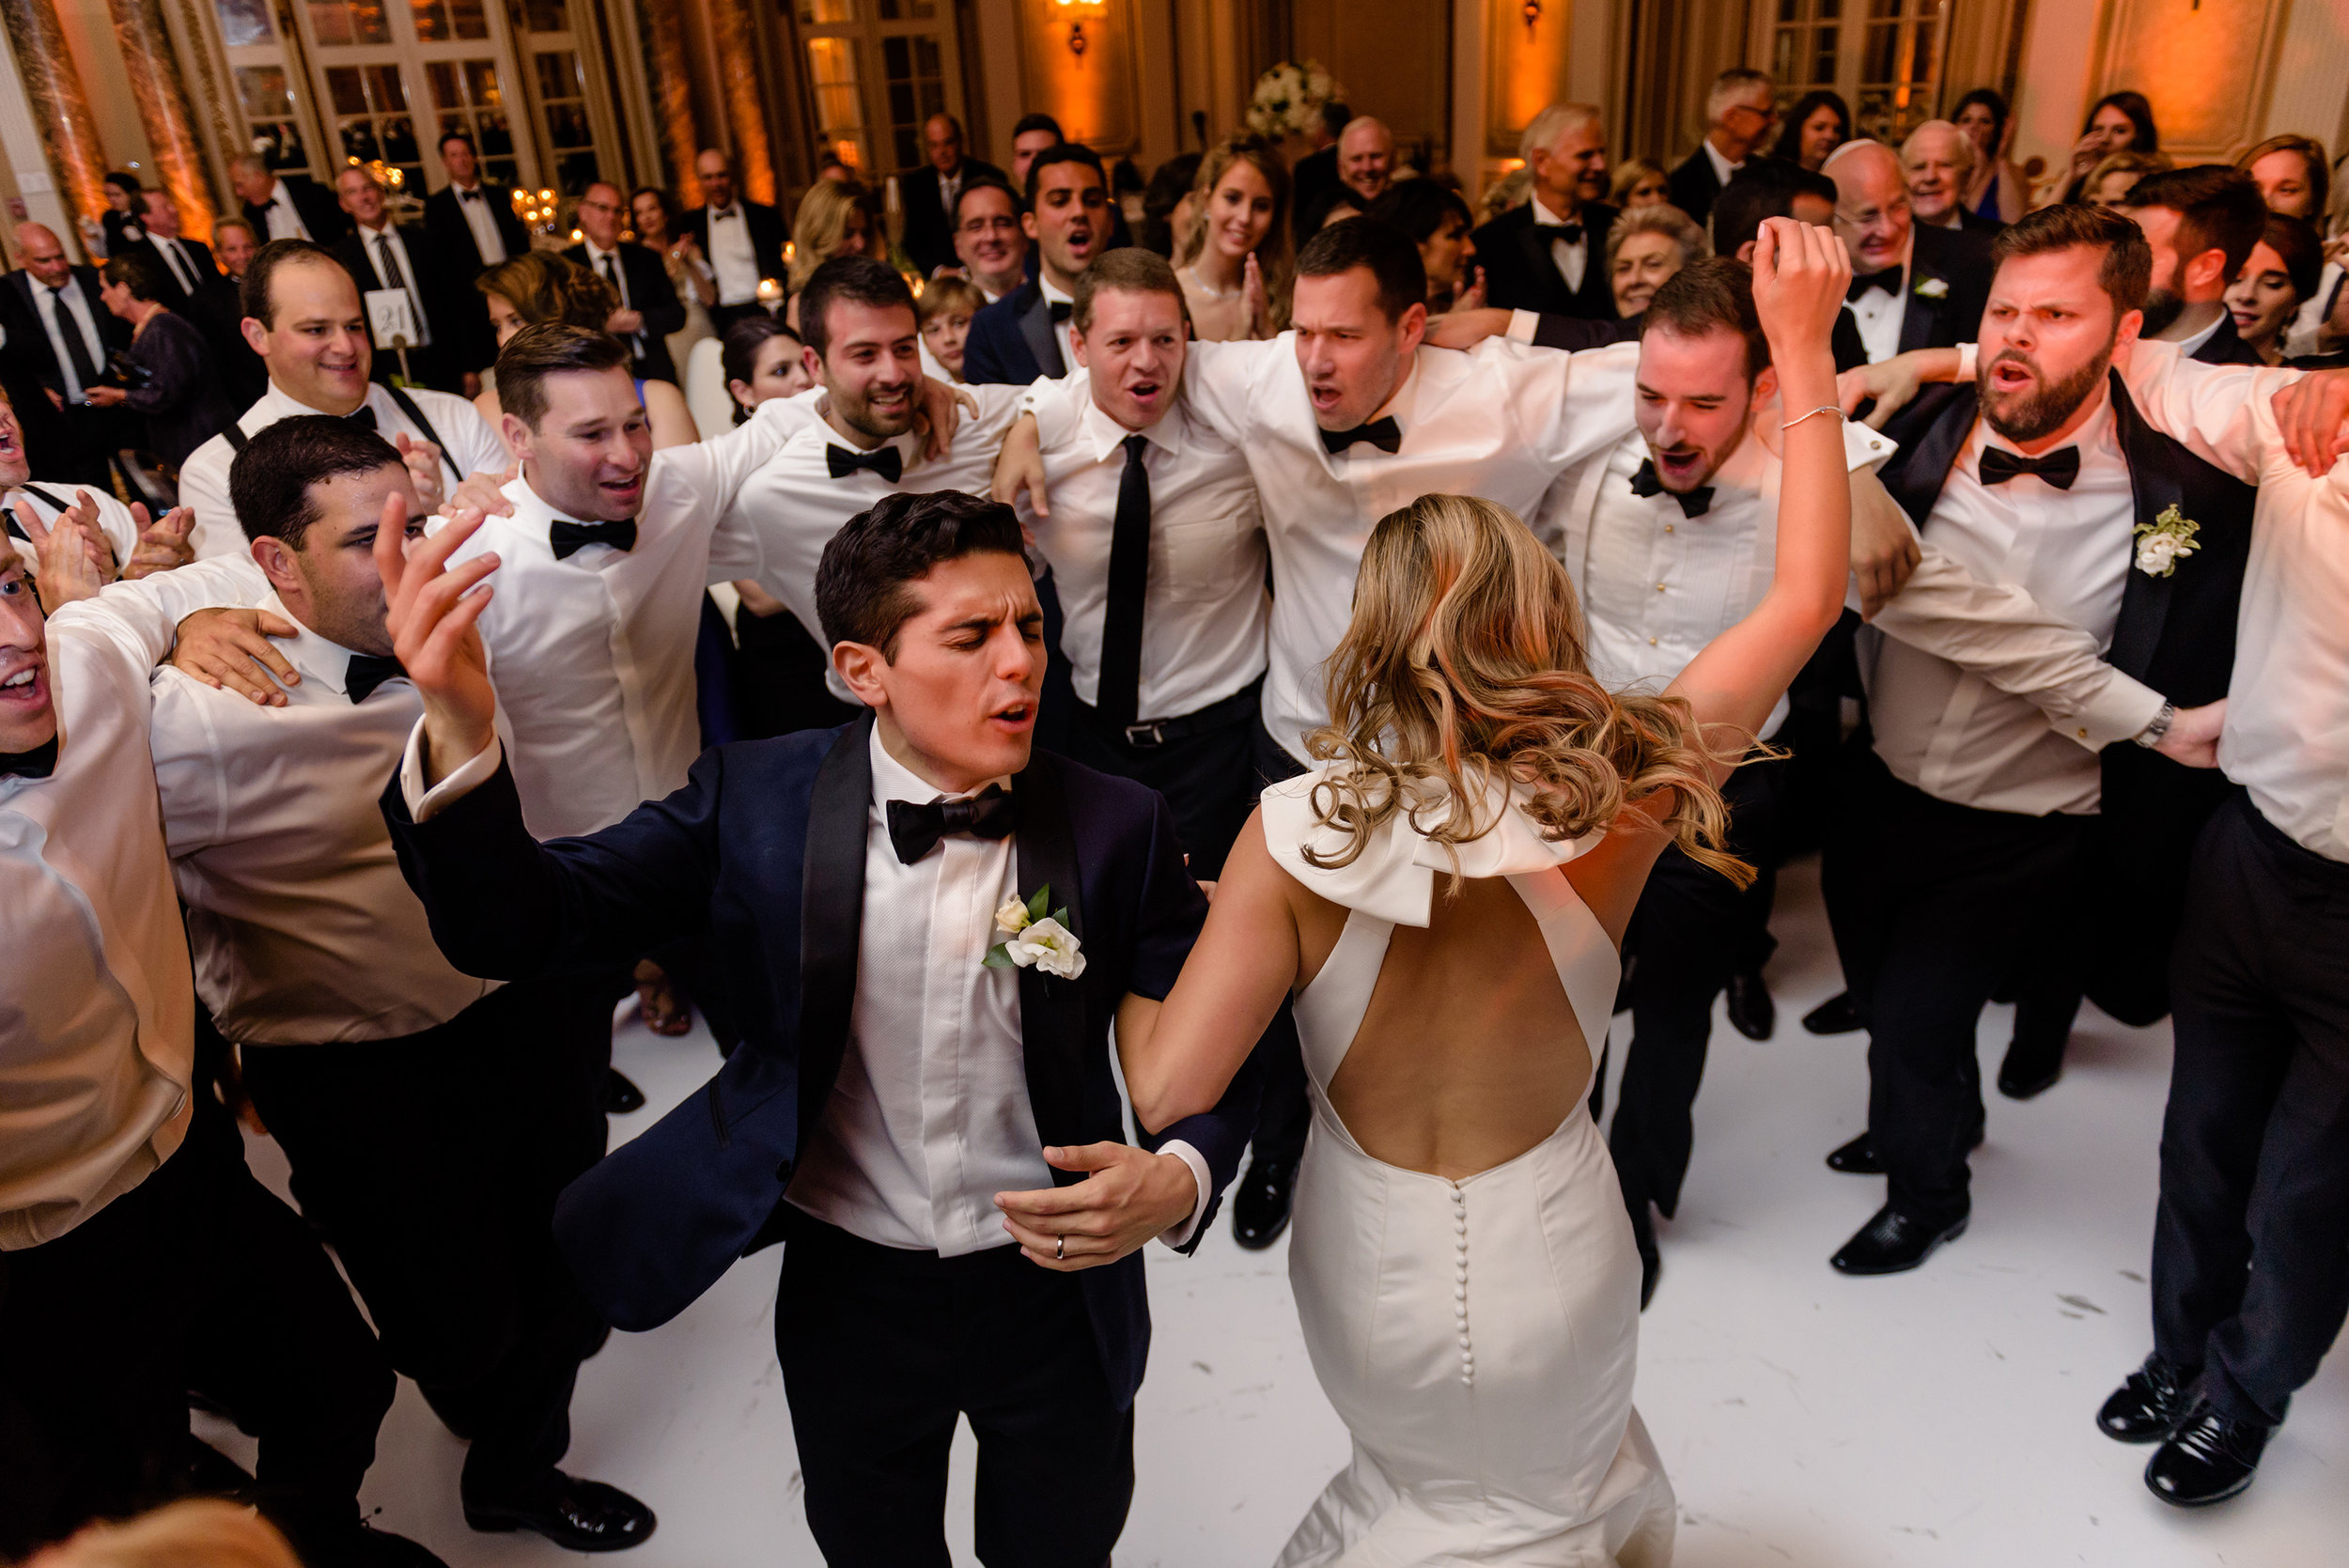 bride-and-groom-horah-dance-during-a-wedding-reception-at-a-fairmont-chateau-laurier-in-ottawa.jpg